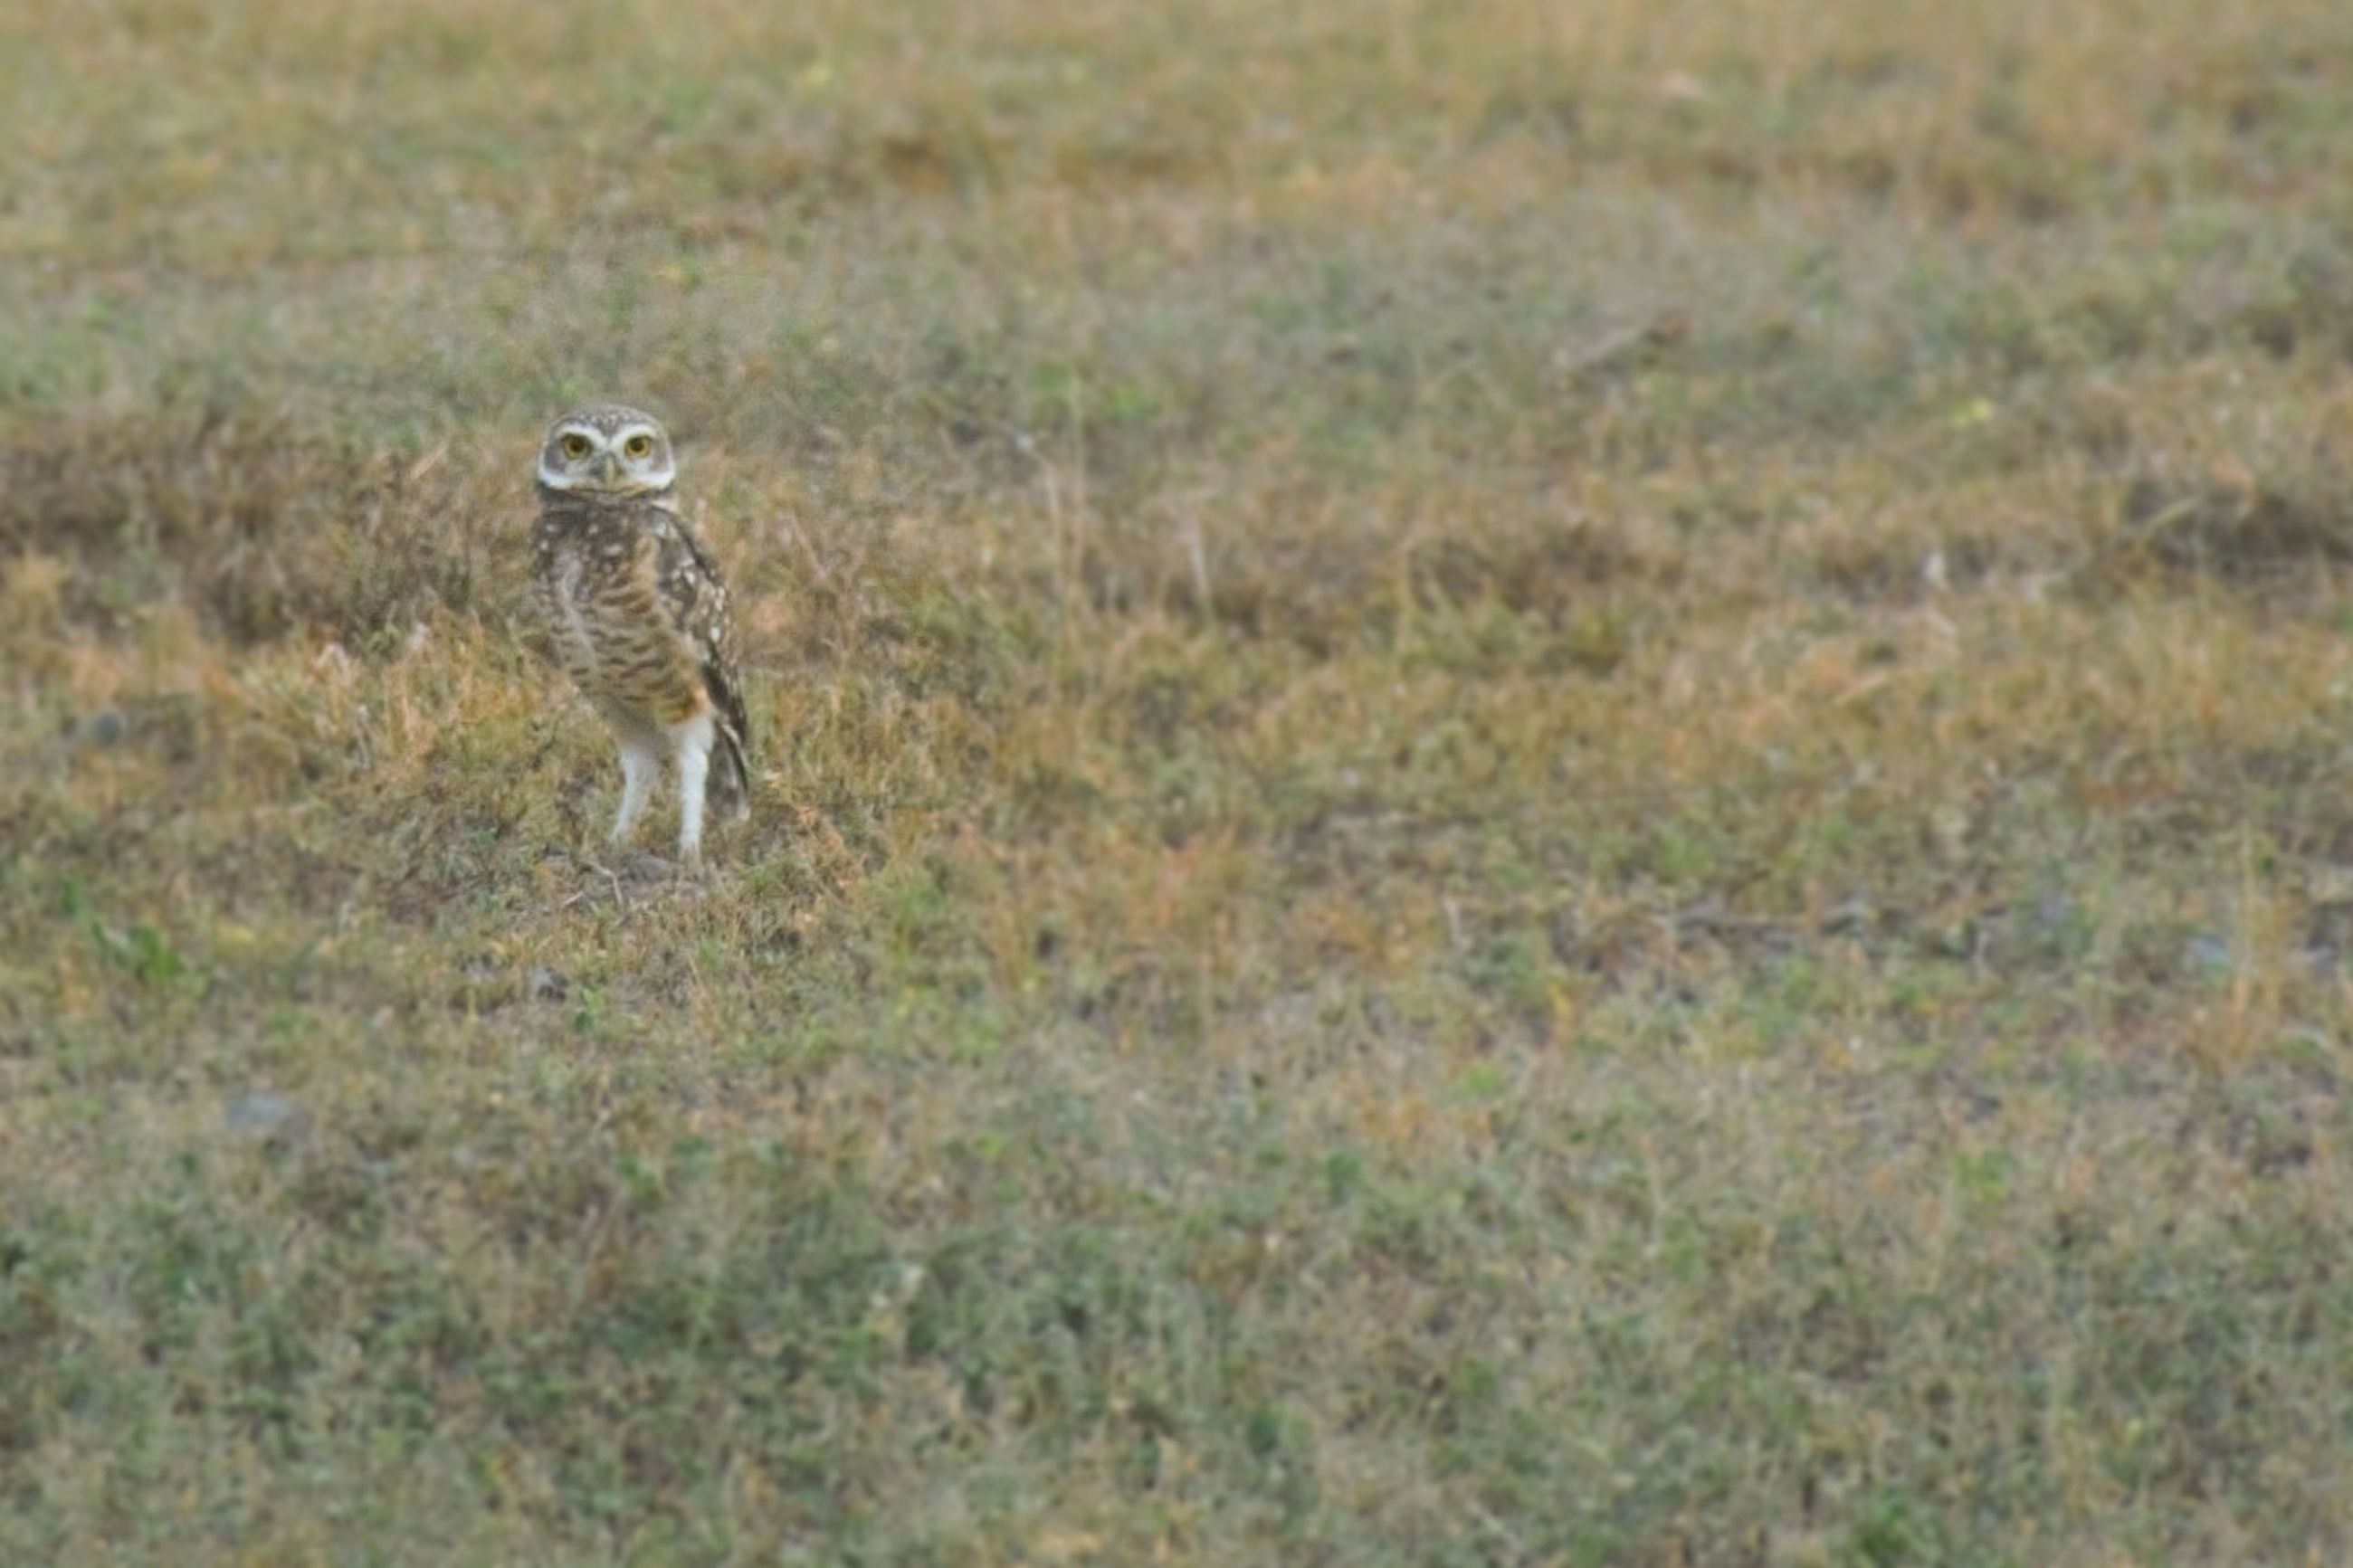 animal wildlife, animals in the wild, one animal, mammal, grass, no people, vertebrate, full length, plant, nature, land, portrait, day, landscape, safari, survival, looking at camera, stealth